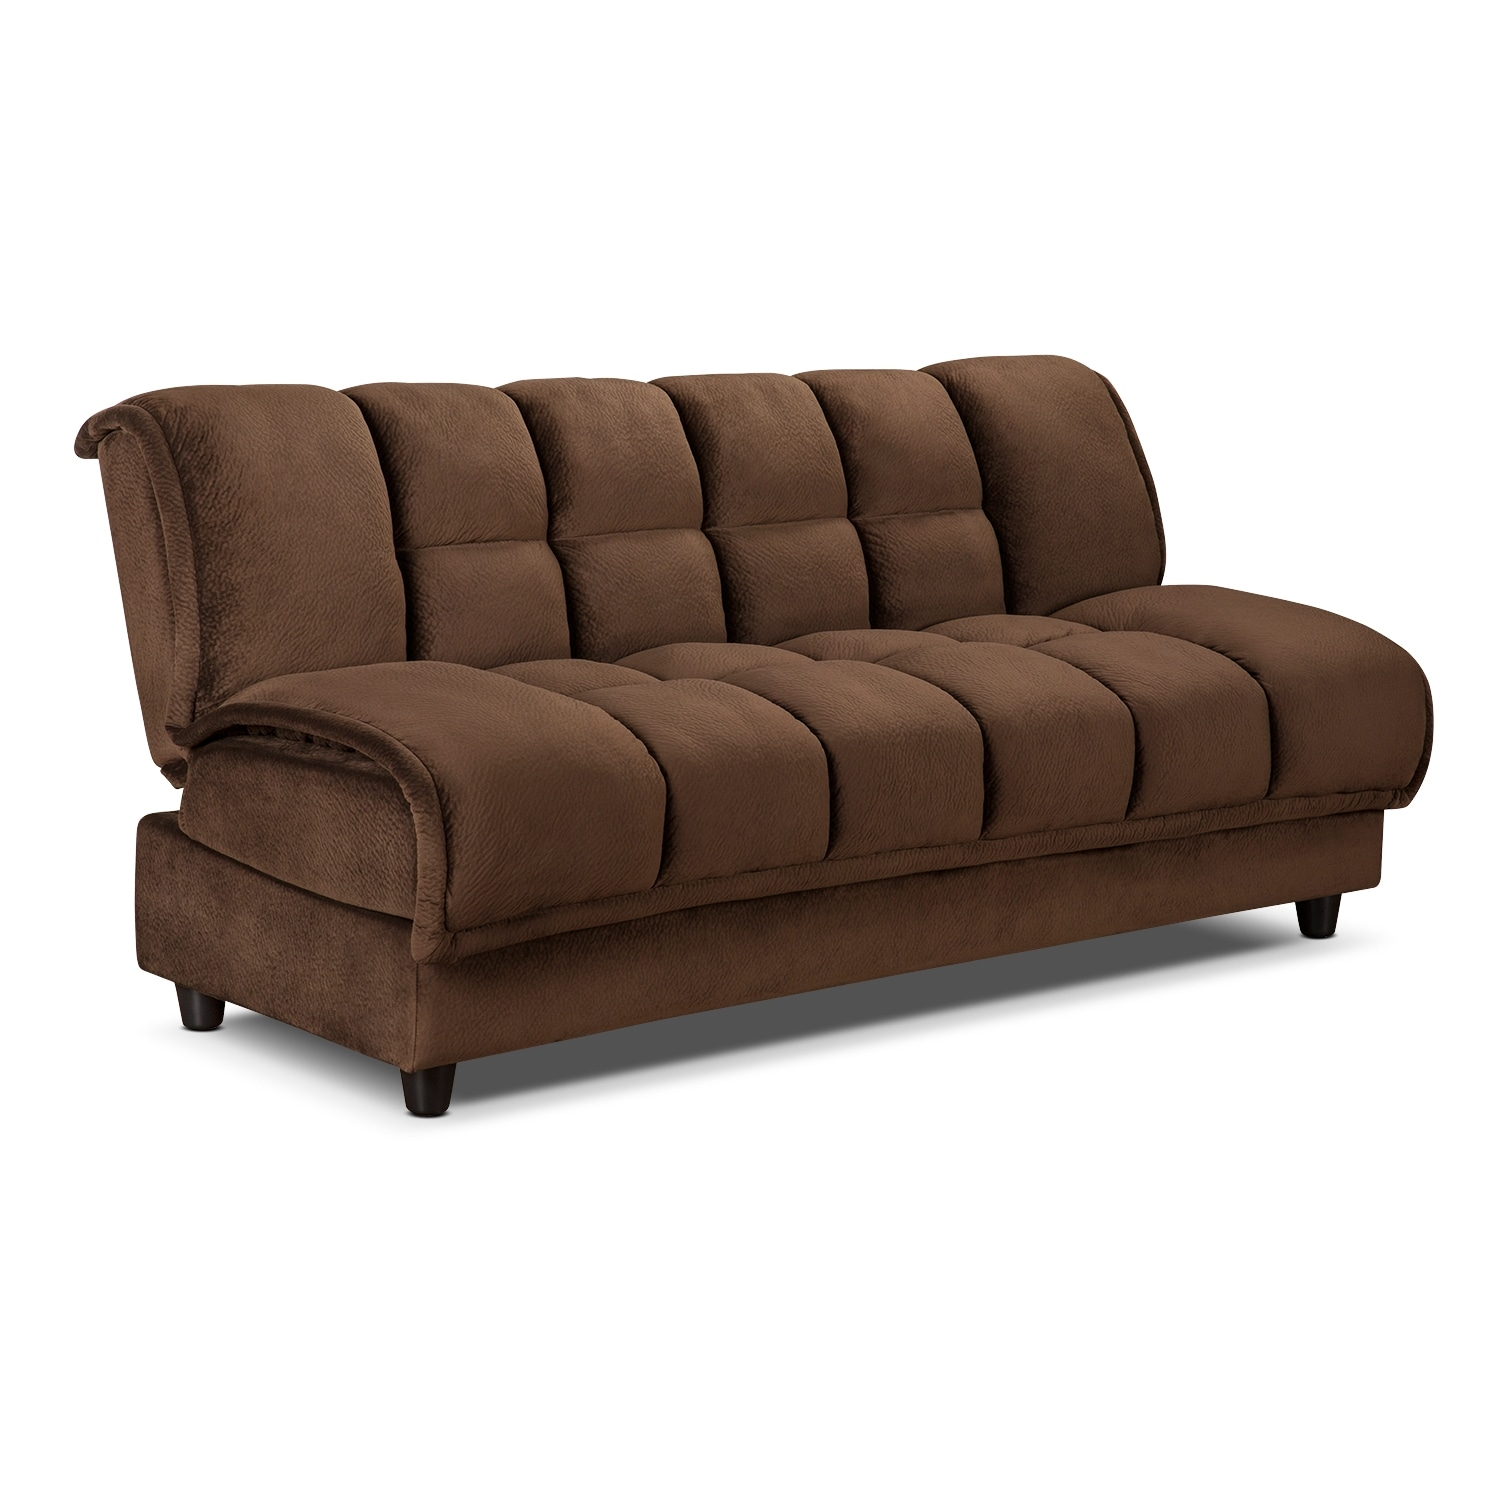 Bennett futon sofa bed espresso american signature for Sectional sofa bed hamilton